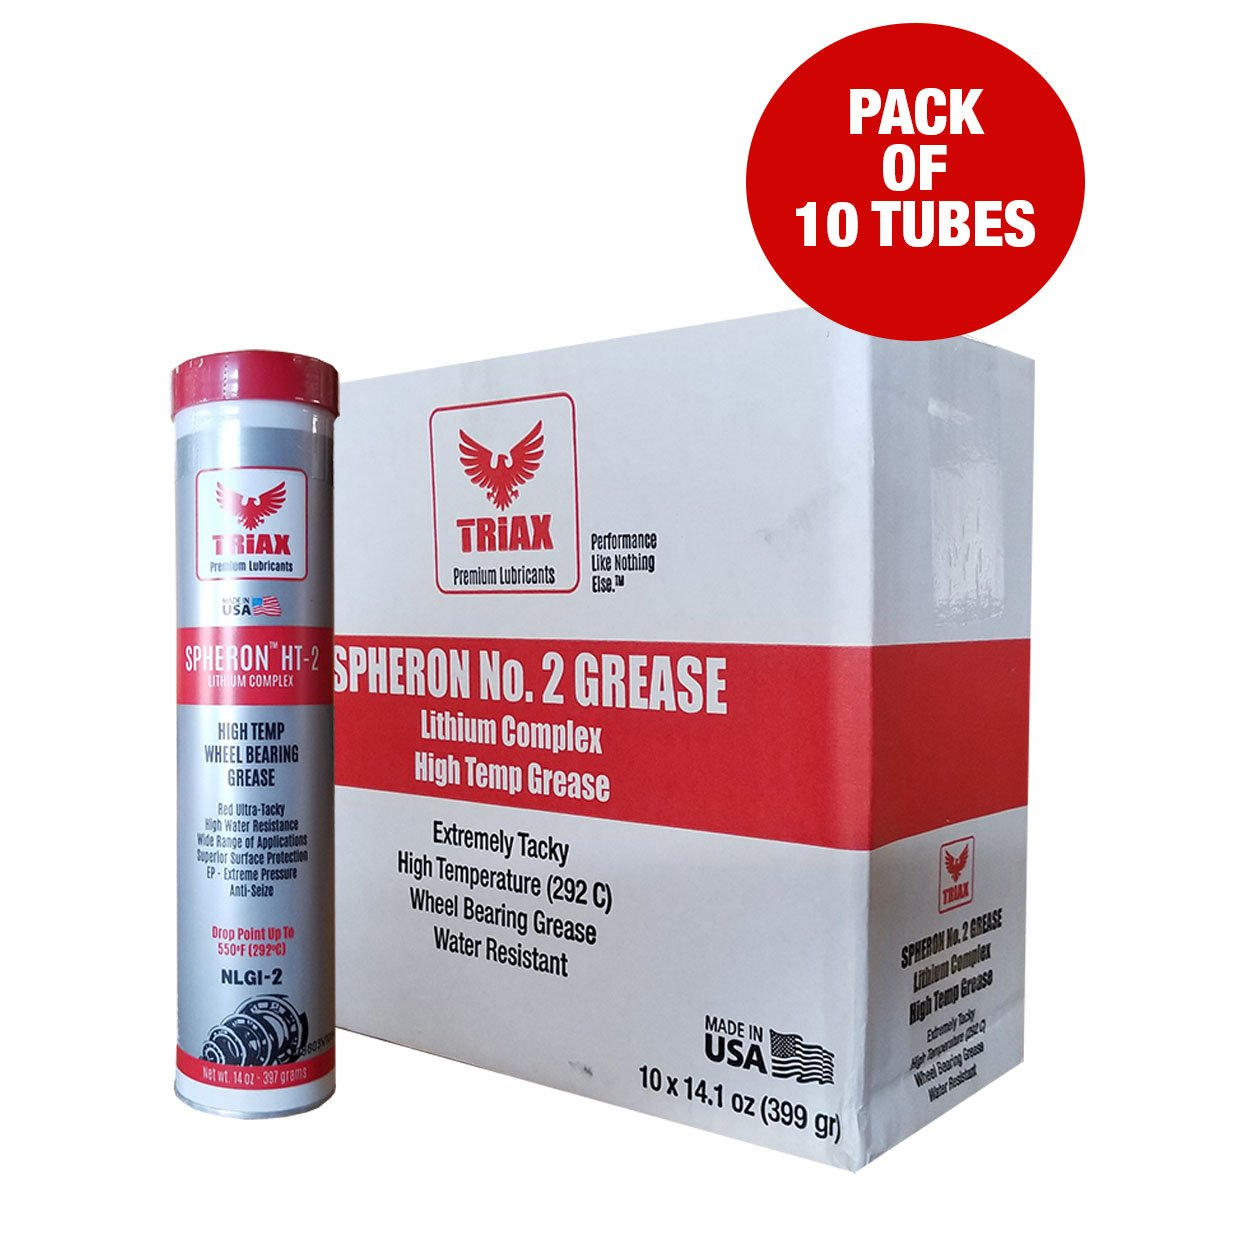 WHEEL BEARING GREASE- TRIAX SPHERON HT-2 Lithium Complex - HIGH TEMP (550F) - ULTRA TACKY - EXTREME PRESSURE - VIRTUALLY WATERPROOF (14 oz Tube - Pack of 10)